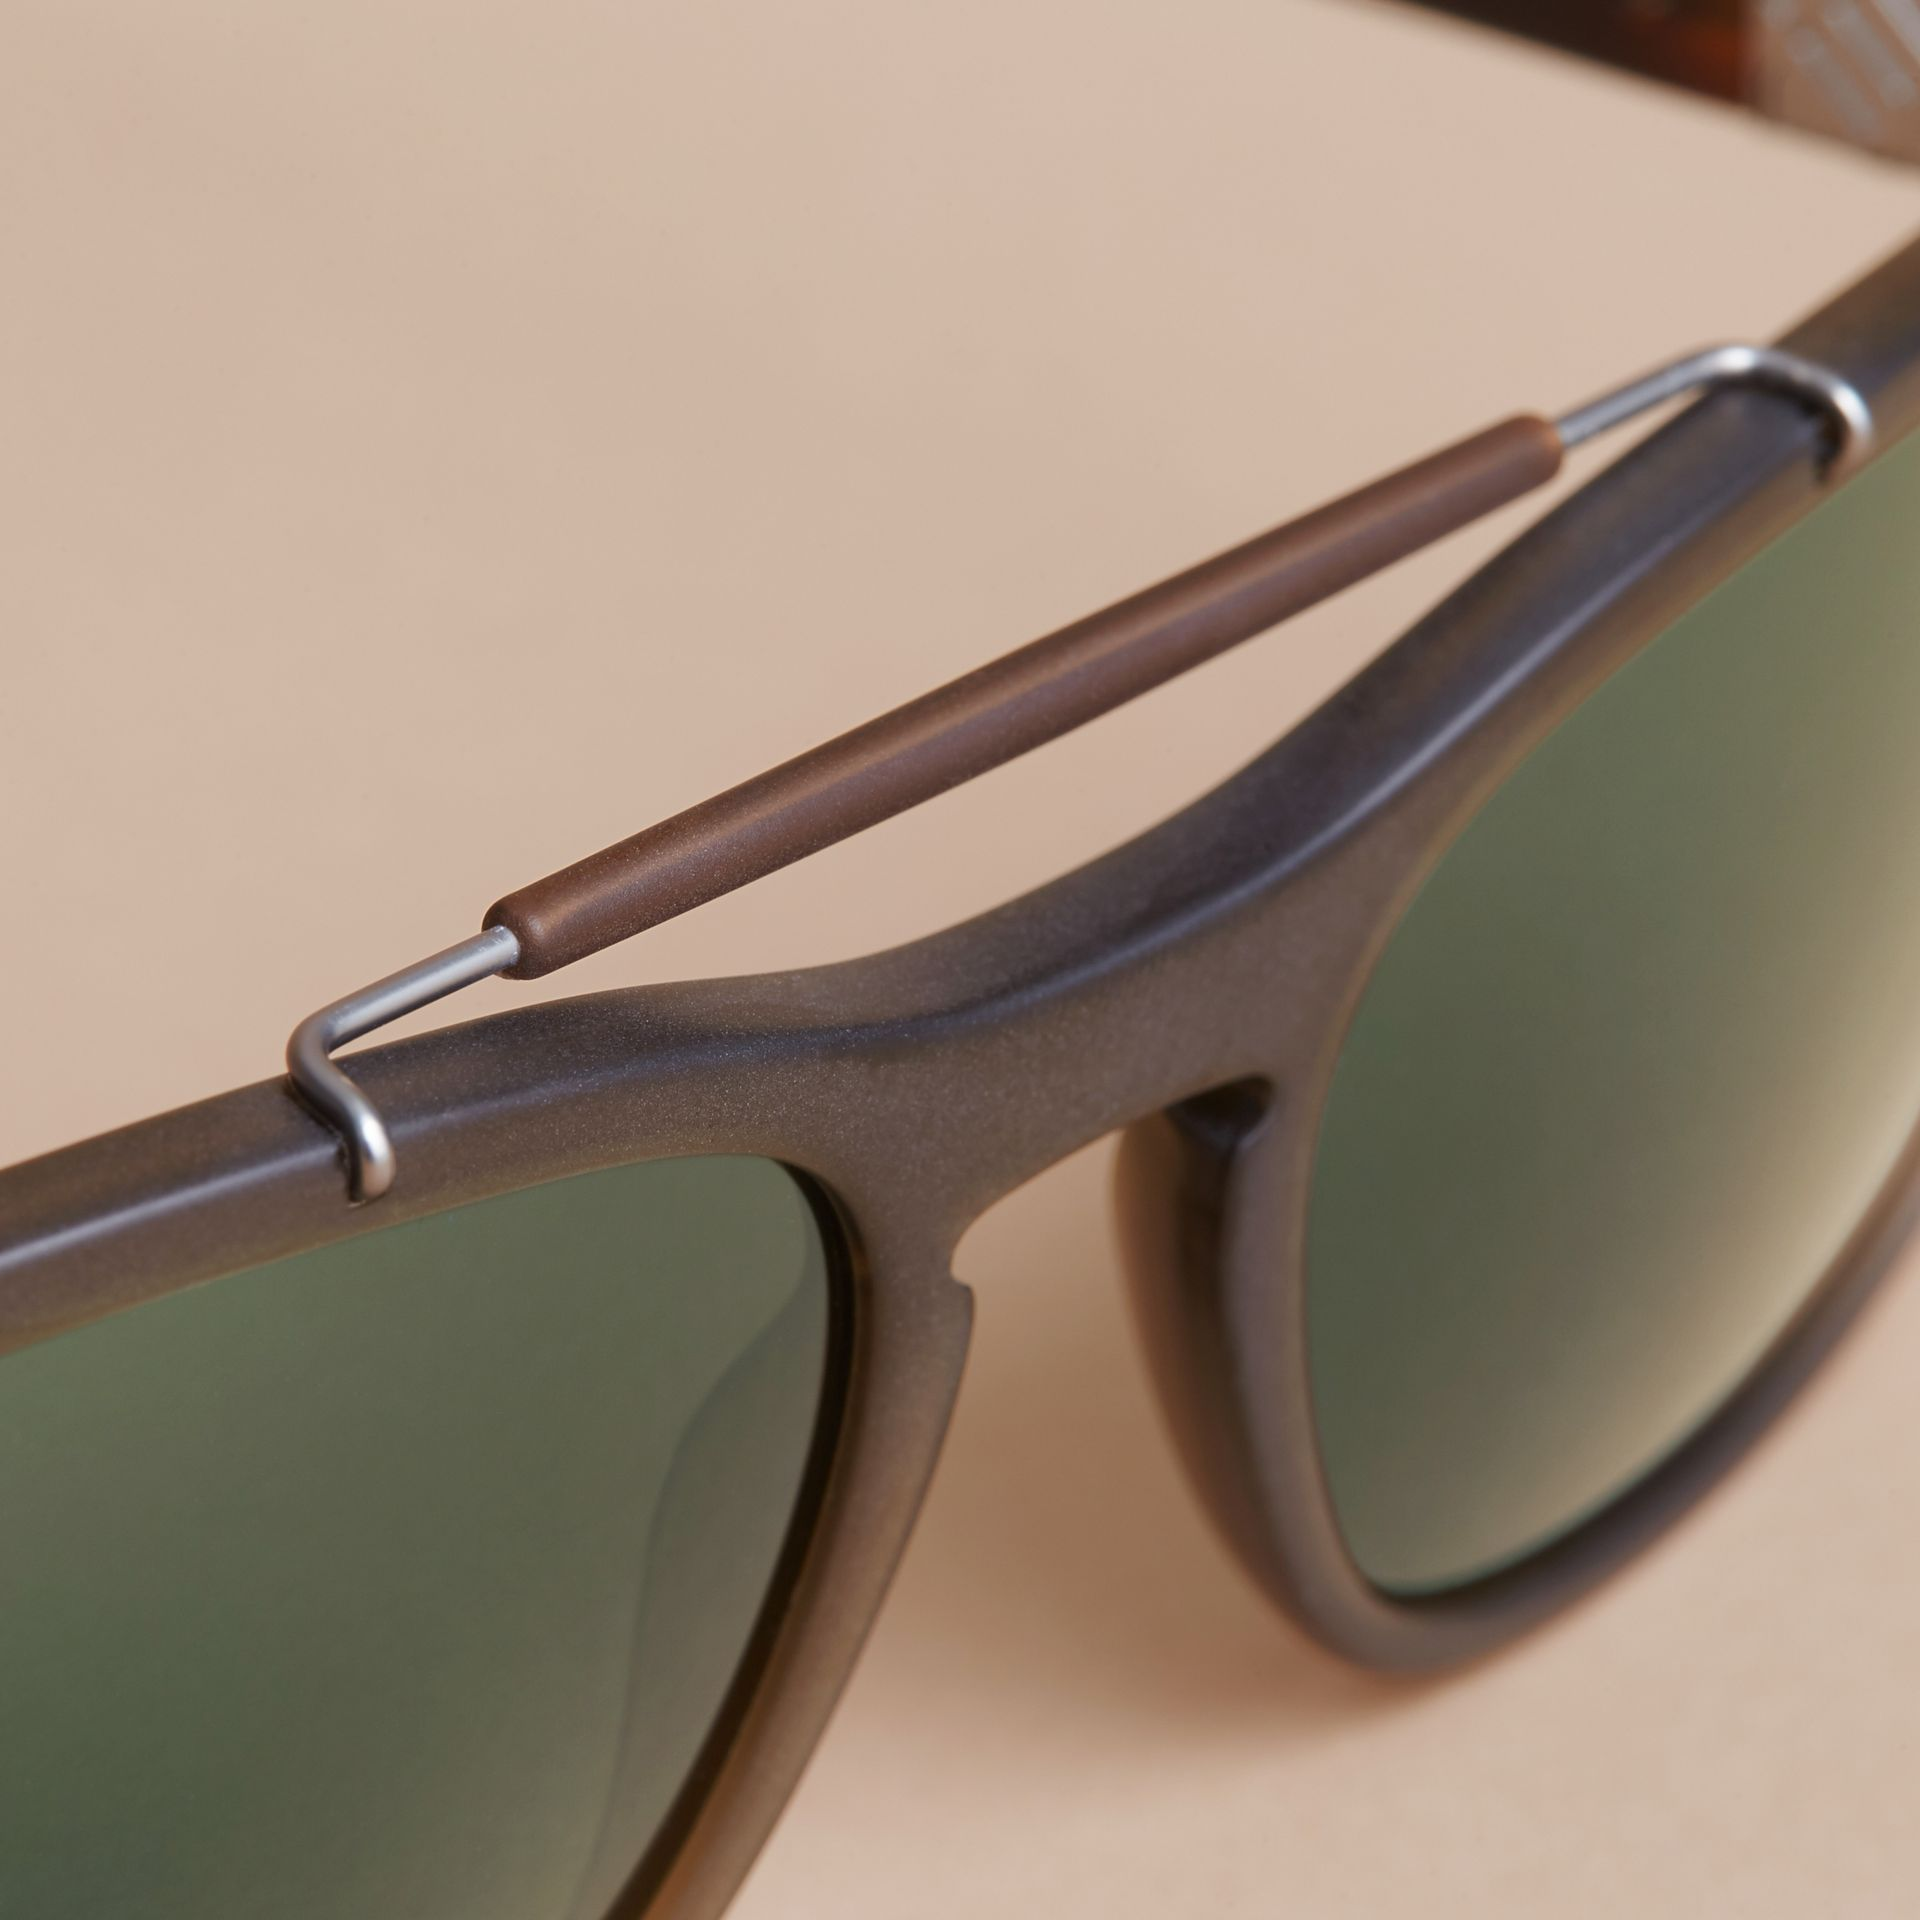 Top Bar Square Frame Sunglasses in Olive - Men | Burberry Canada - gallery image 2